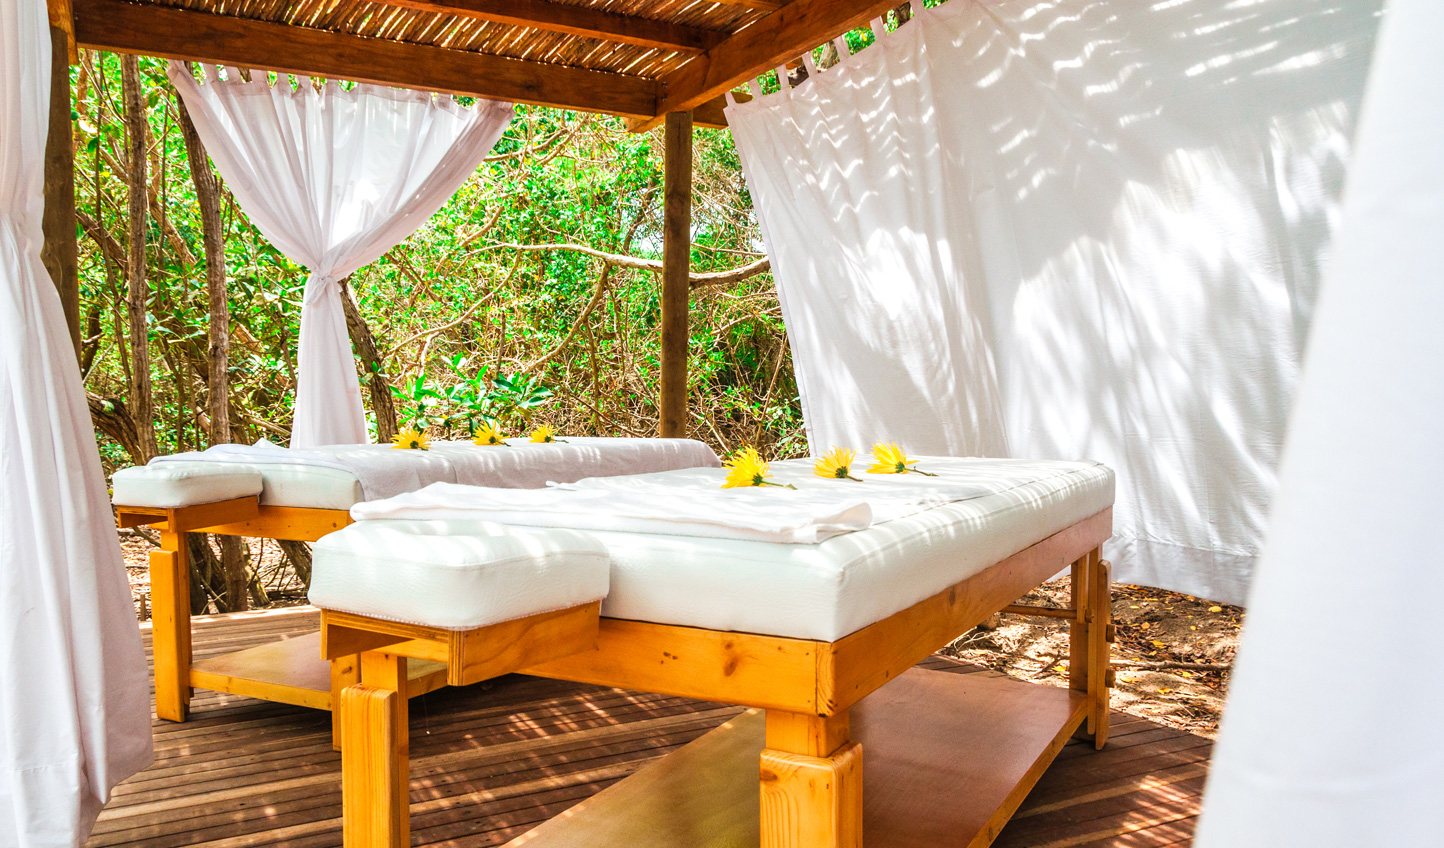 Enjoy a treatment out in the tropical breeze